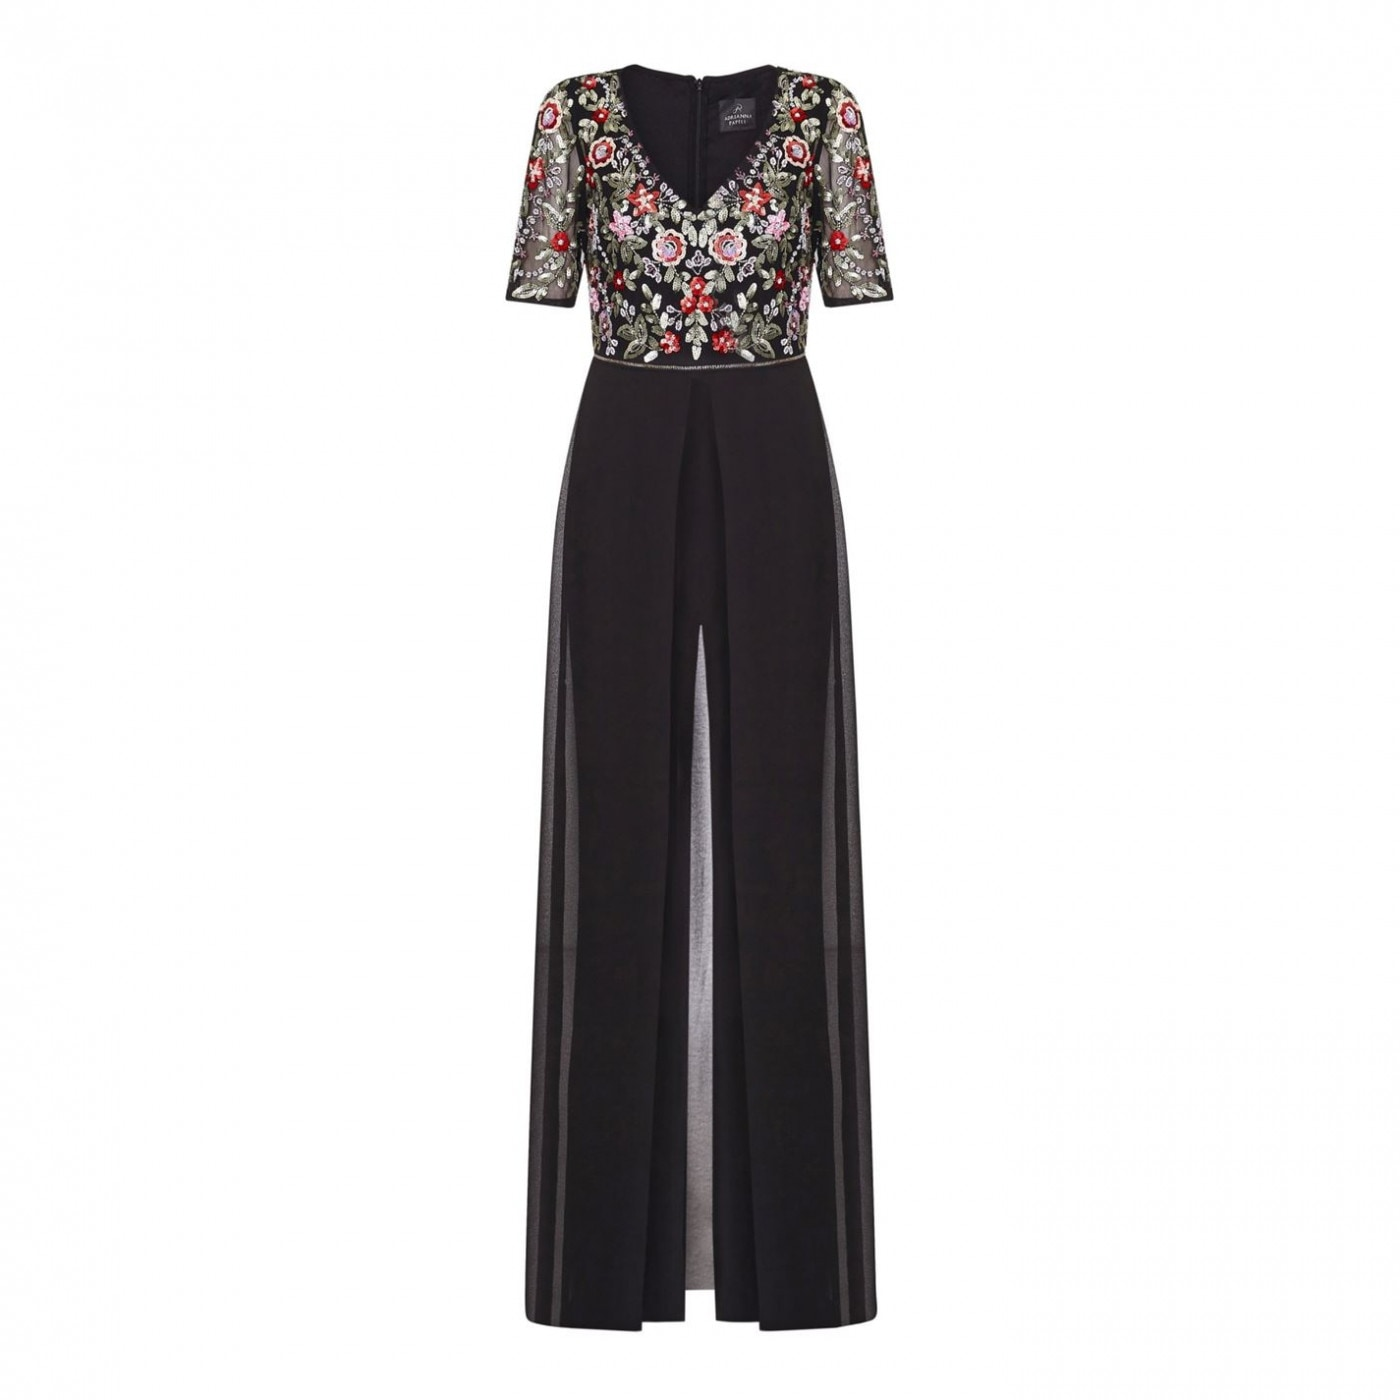 Adrianna Papell Embellished Jumpsuit with Sheer Skirt